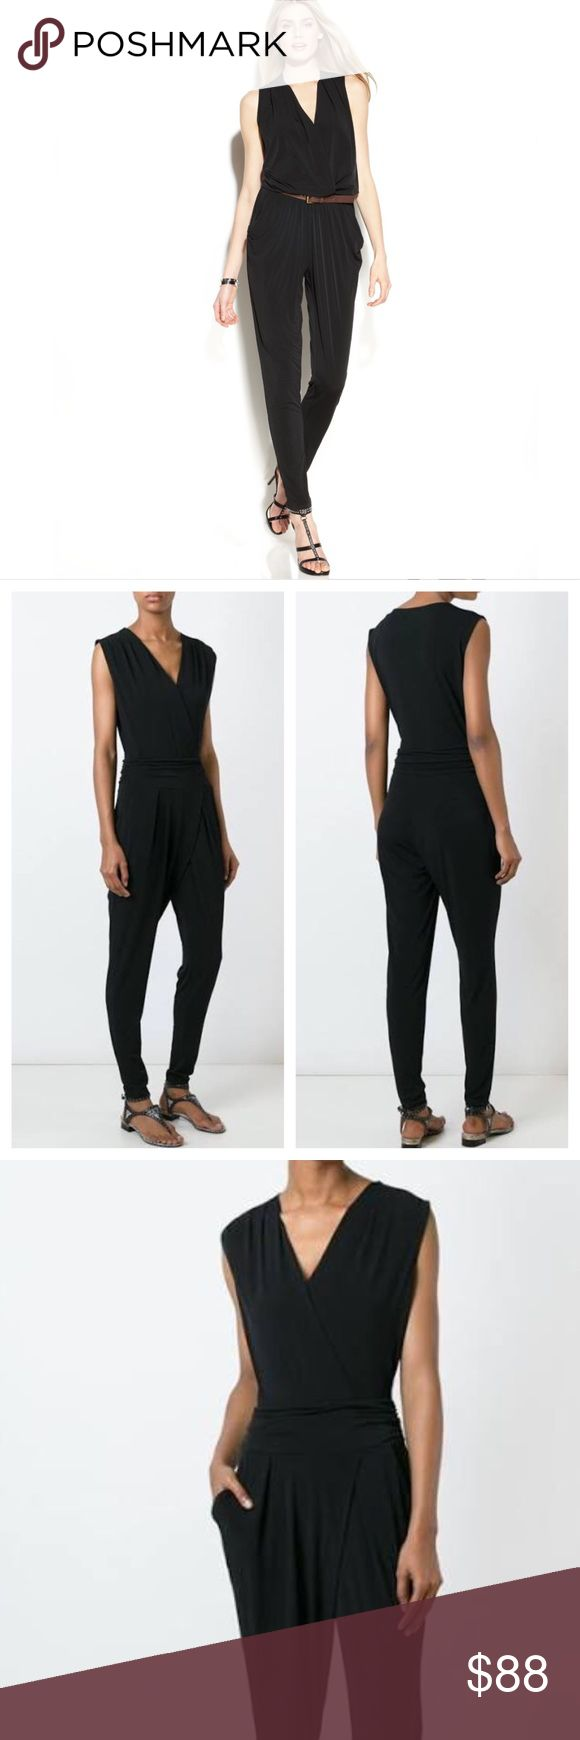 Michael Kors vneck black jumpsuit one piece outfit Brand new with $140 tags. Sizes available: large & extra large. Adorable one piece jumpsuit. Authentic Michael Kors. Michael Kors vneck black jumpsuit one piece outfit. Michael Kors Pants Jumpsuits & Rompers